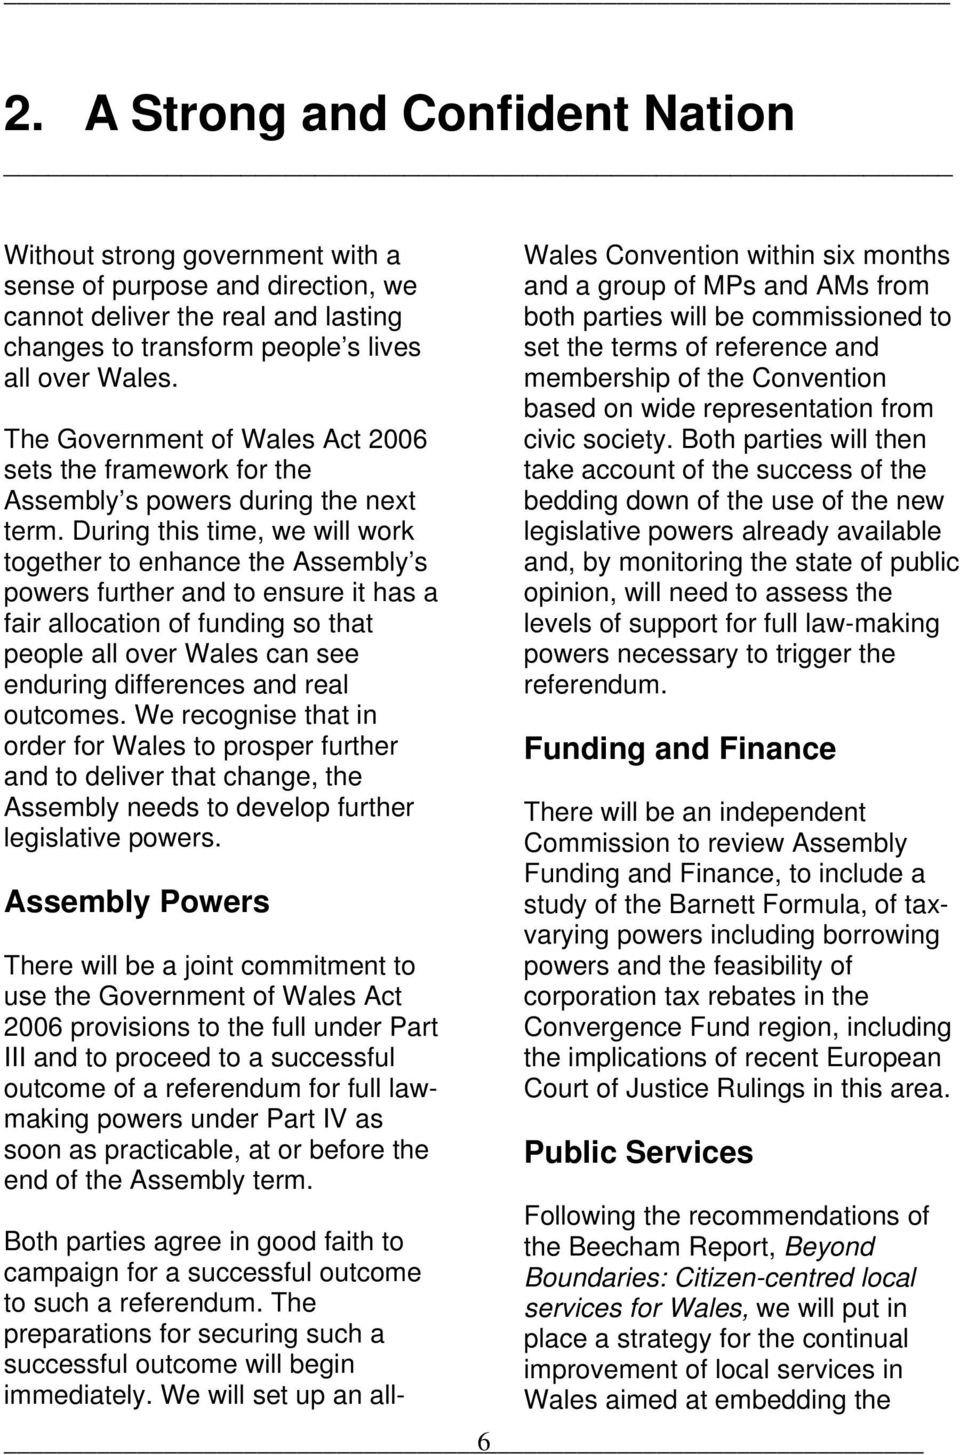 During this time, we will work together to enhance the Assembly s powers further and to ensure it has a fair allocation of funding so that people all over Wales can see enduring differences and real